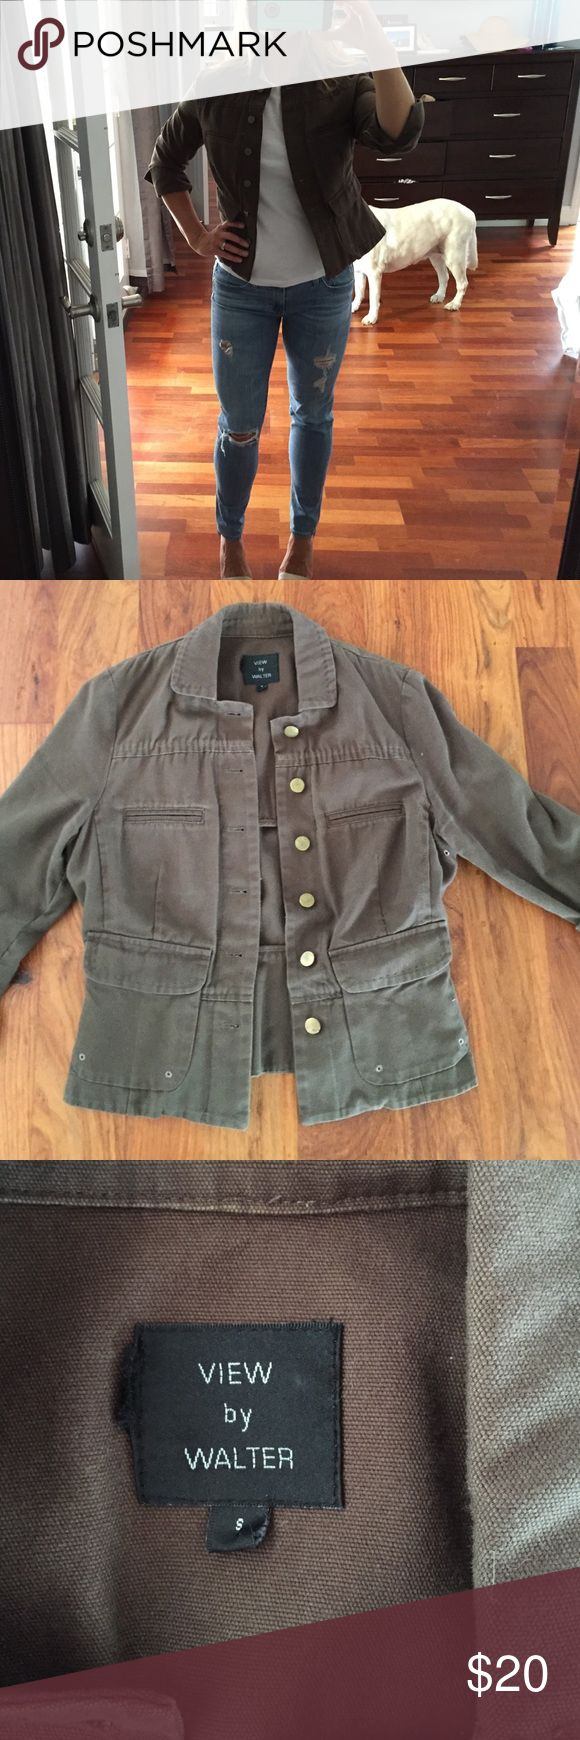 Very flattering jacket - olive green size small Cute olive green jacket with 3/4 length sleeves and peplum back detail.  Size small.  EUC Jackets & Coats